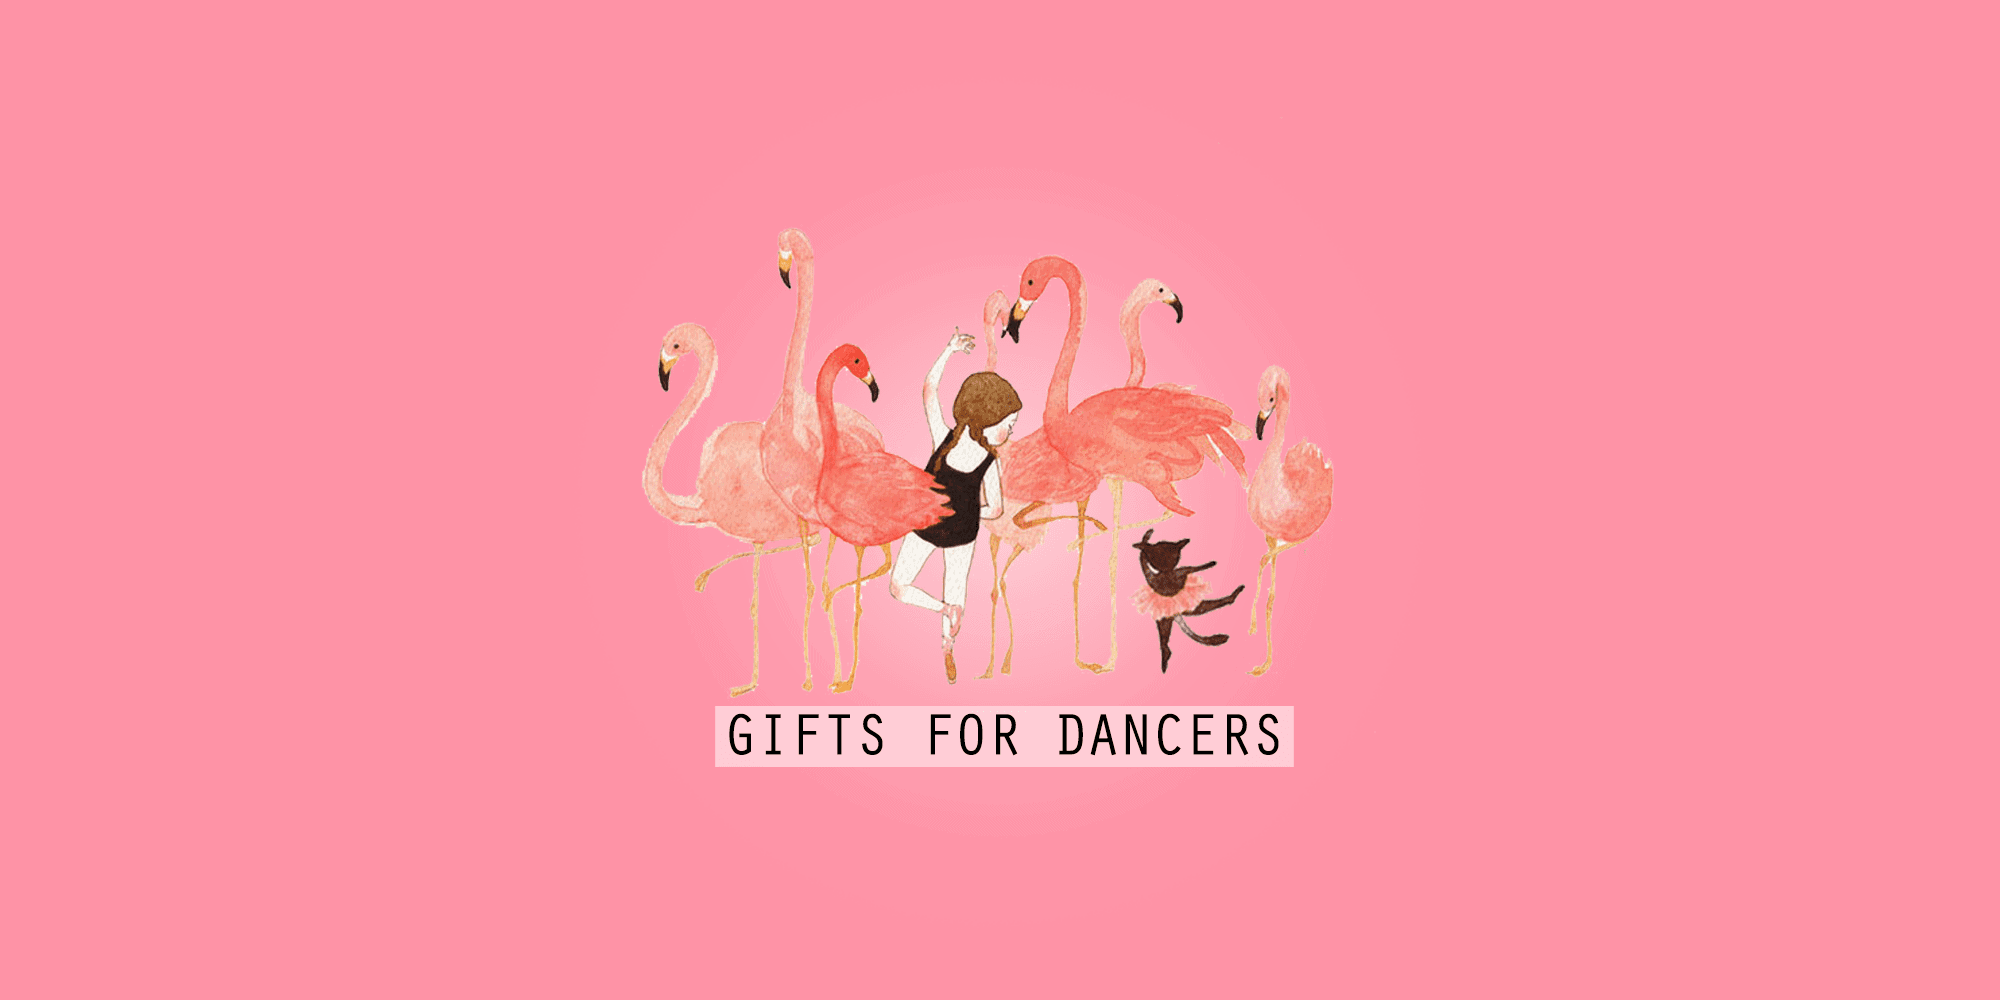 29 Best Gifts for Dancers That Will Make Them Twirl With Delight (2021)